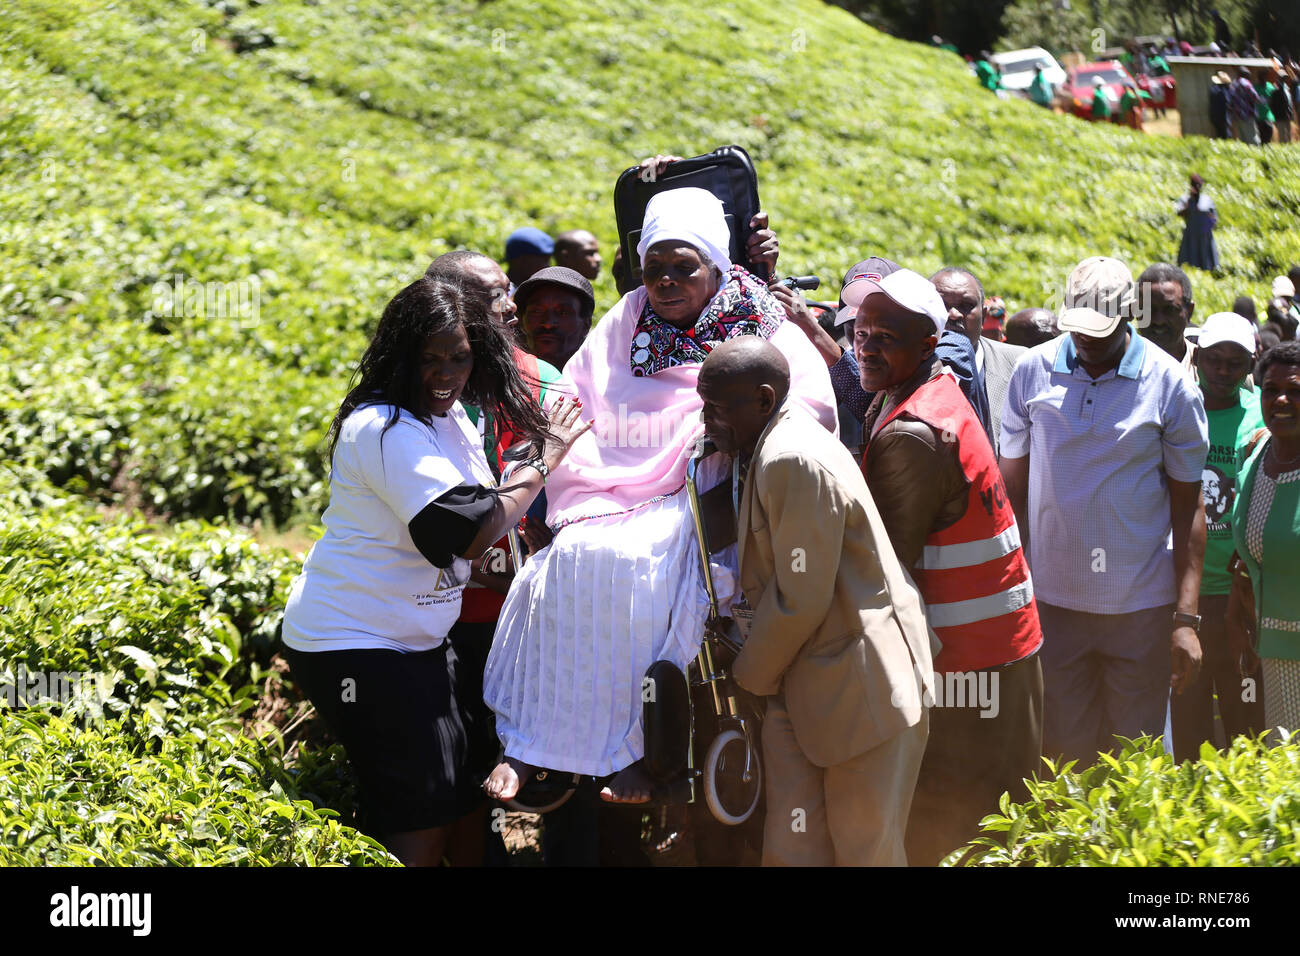 Nyeri, Kenya. 18th Feb, 2019. People seen helping Mukami Kimathi, widow to Kenya's freedom fighter Dedan Kimathi get to a shrine where he was captured in 1956 during the commemoration.Kenya's freedom fighters against British colonial rule called ''˜Mau Mau' commemorated the execution of their leader Dedan Kimathi on February 18, 1957. His body was buried at an unknown grave, widow Mukami Kimathi wants his grave disclosed and remains exhumed for a decent burial. Credit: Billy Mutai/SOPA Images/ZUMA Wire/Alamy Live News - Stock Image